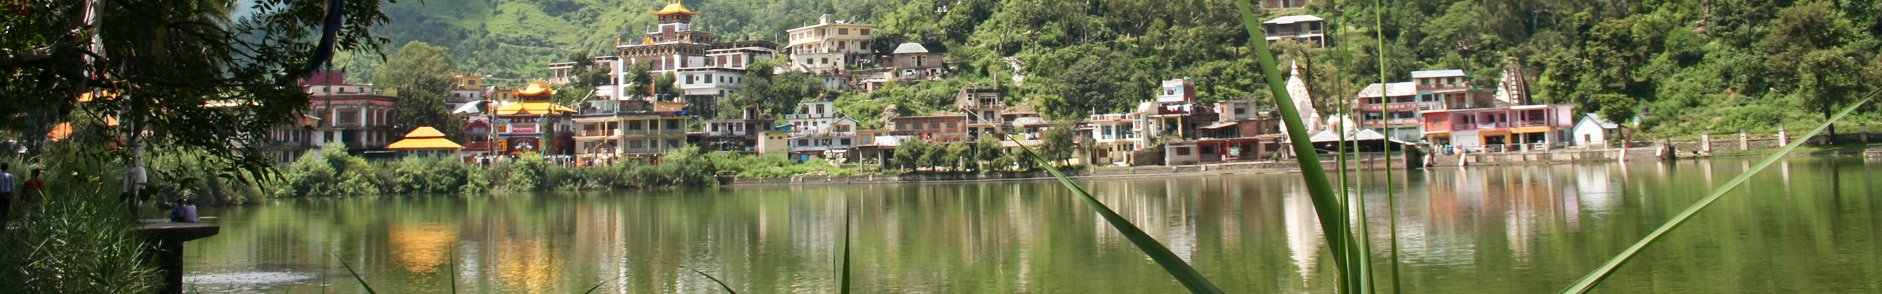 Mandi Travel Guide Himachal